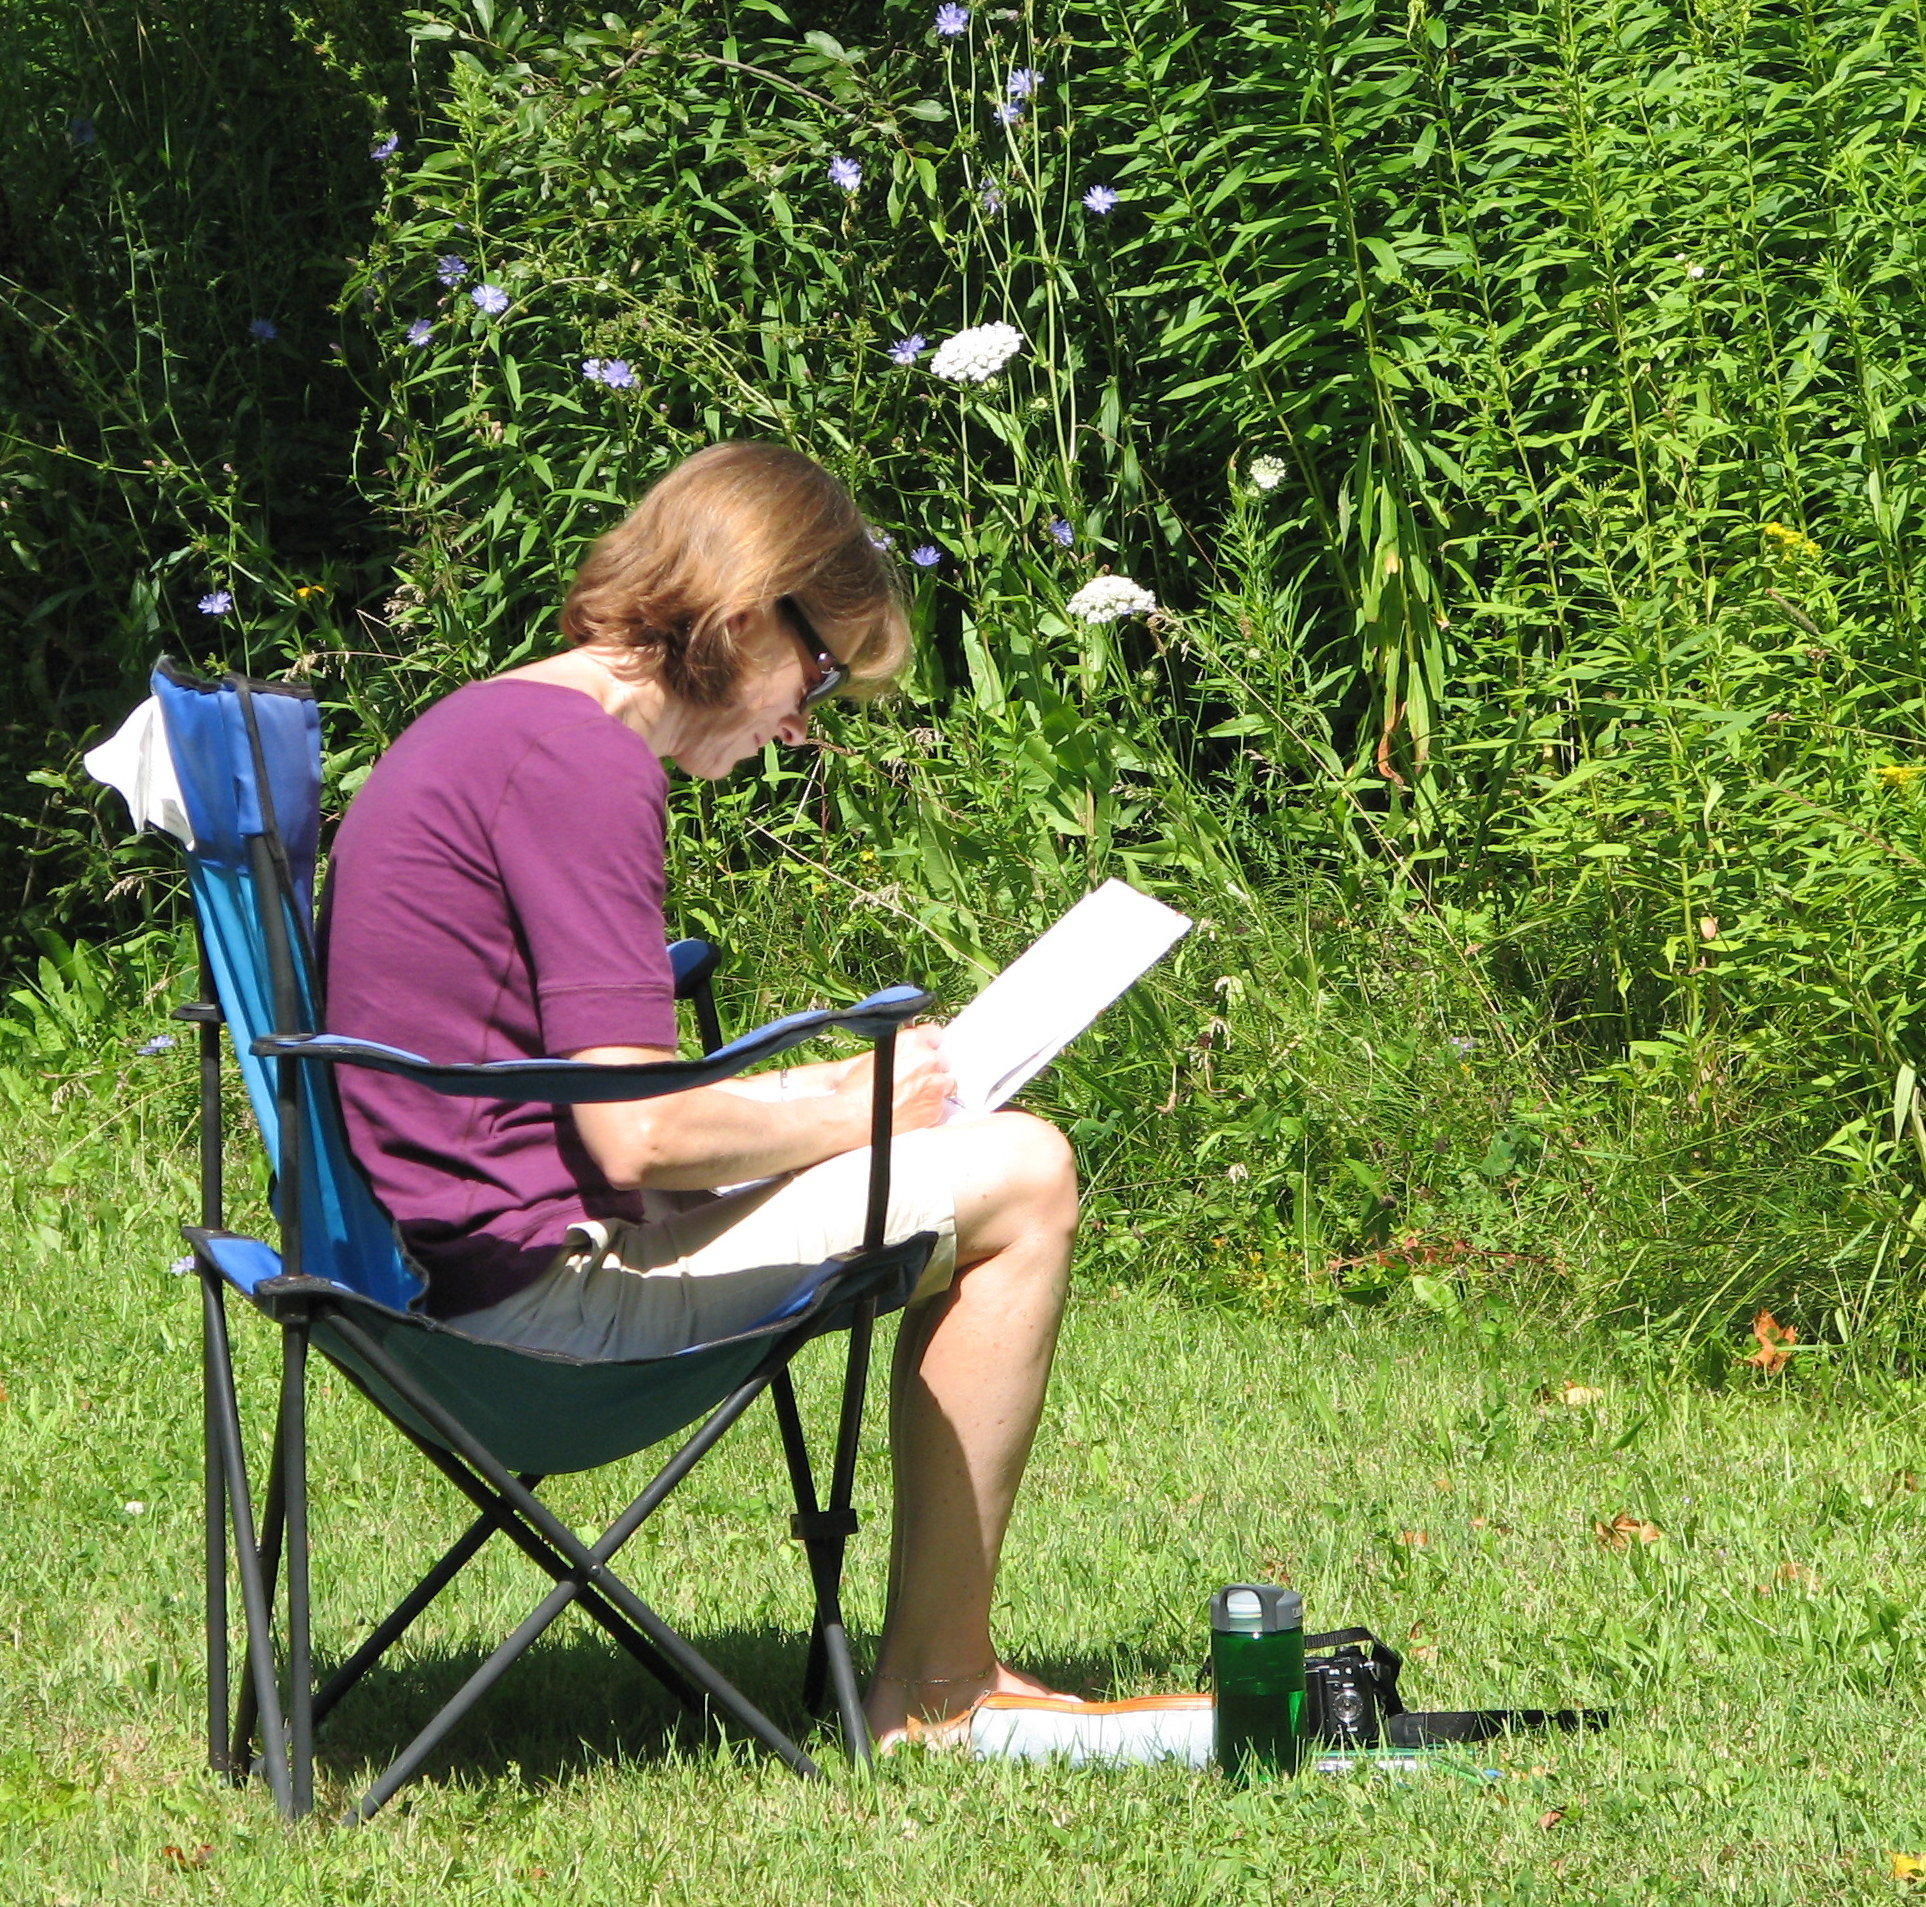 Person seated in camp chair own a lawn near blooing flowers, drawing or writing on large pad pof paper.